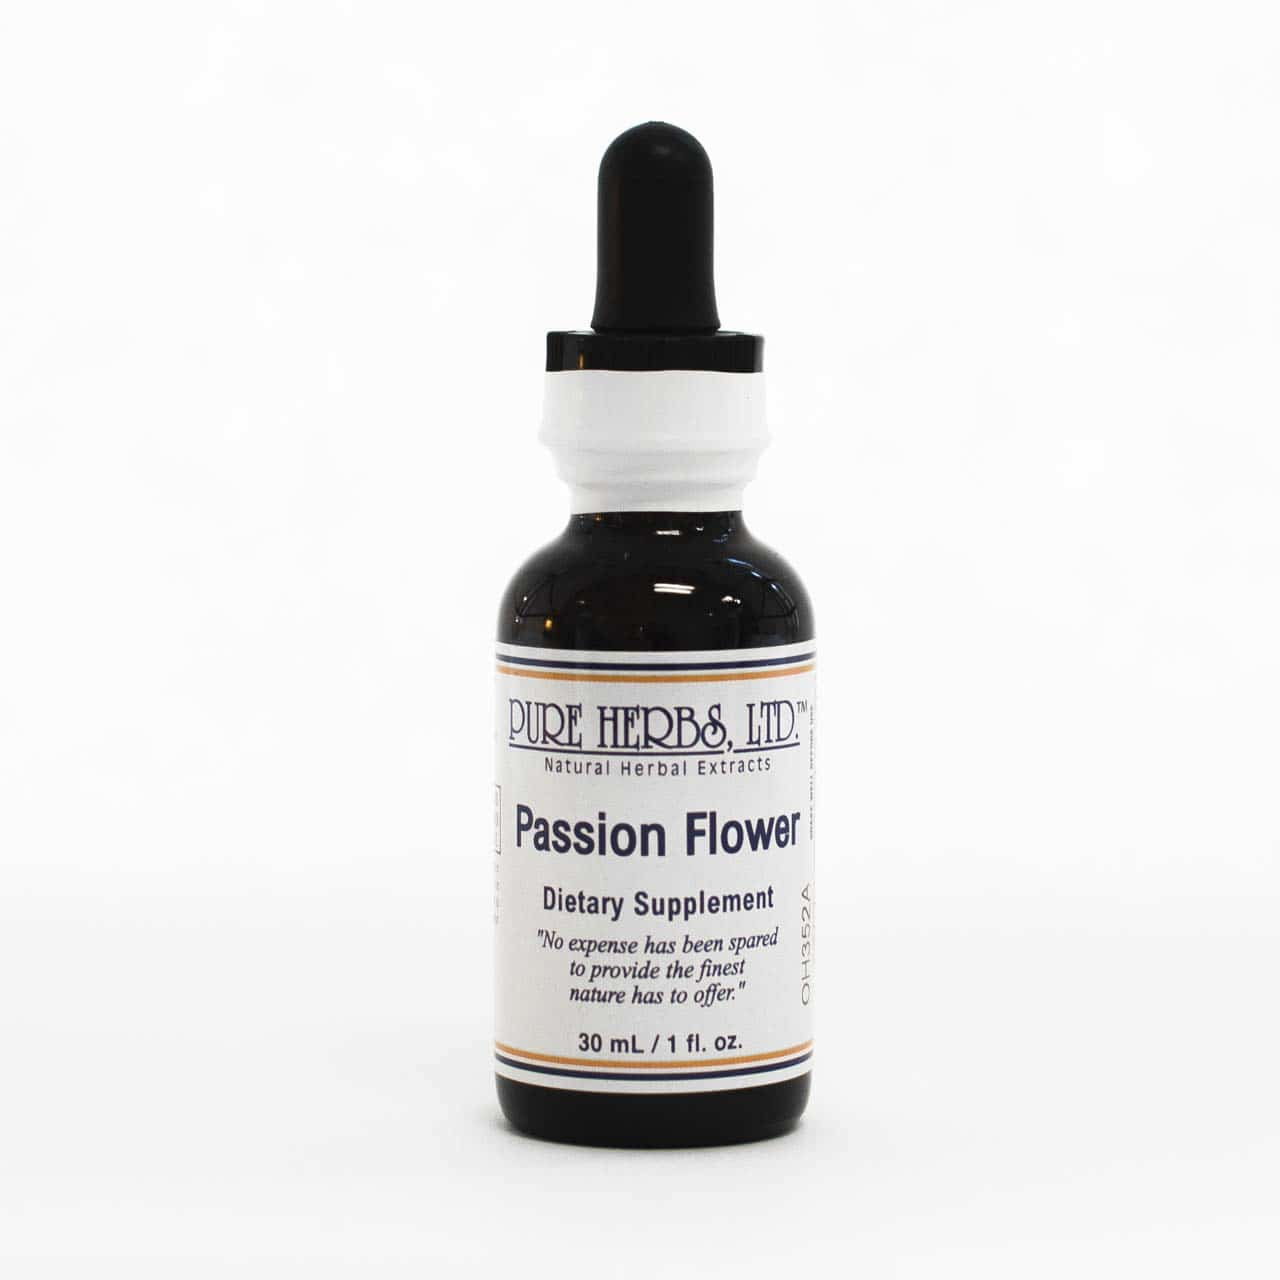 Passion Flower Pure Herbs